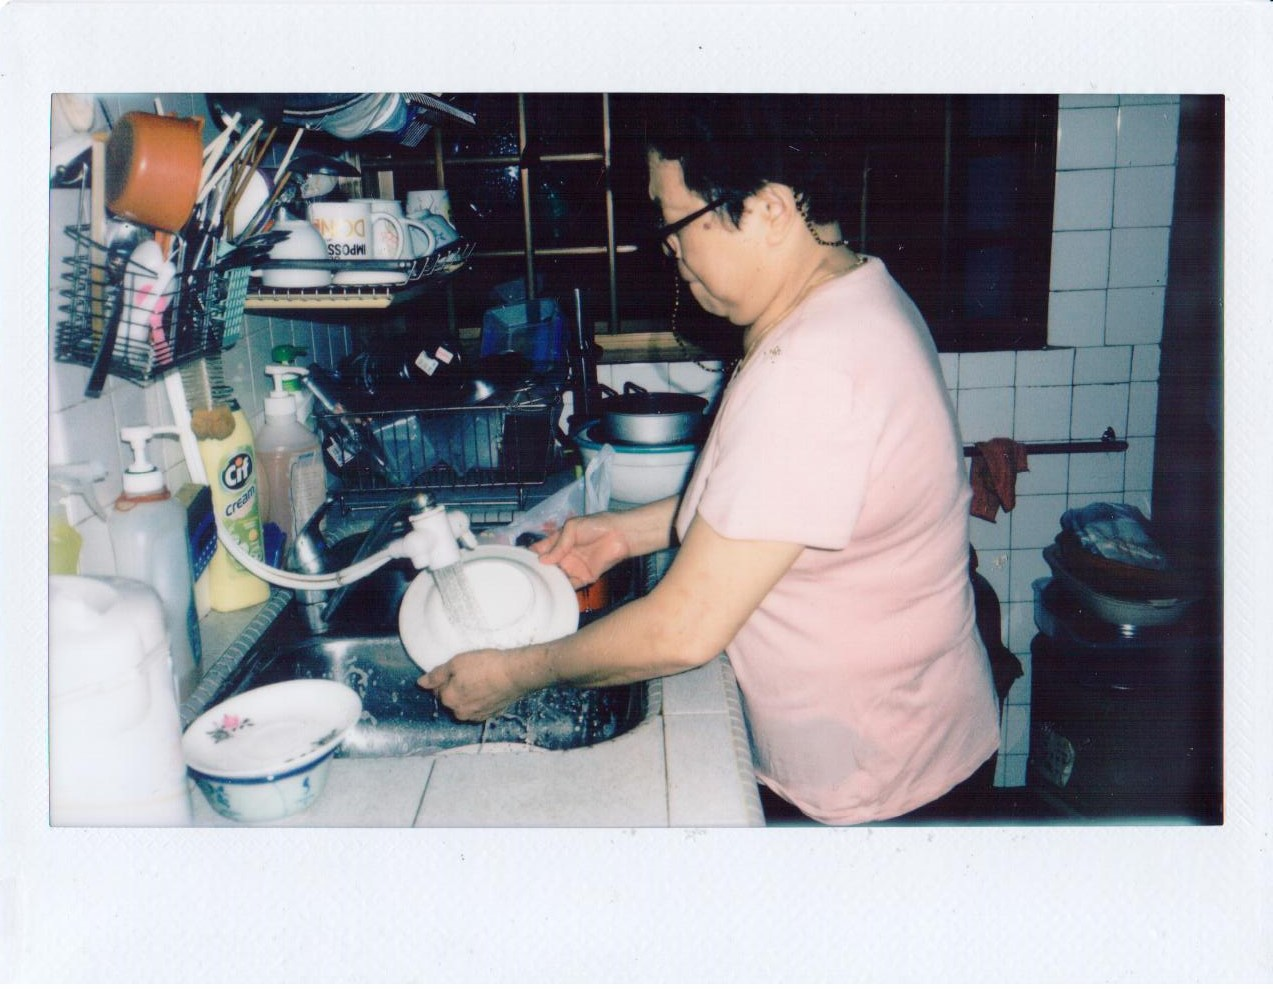 My Mother washing dishes